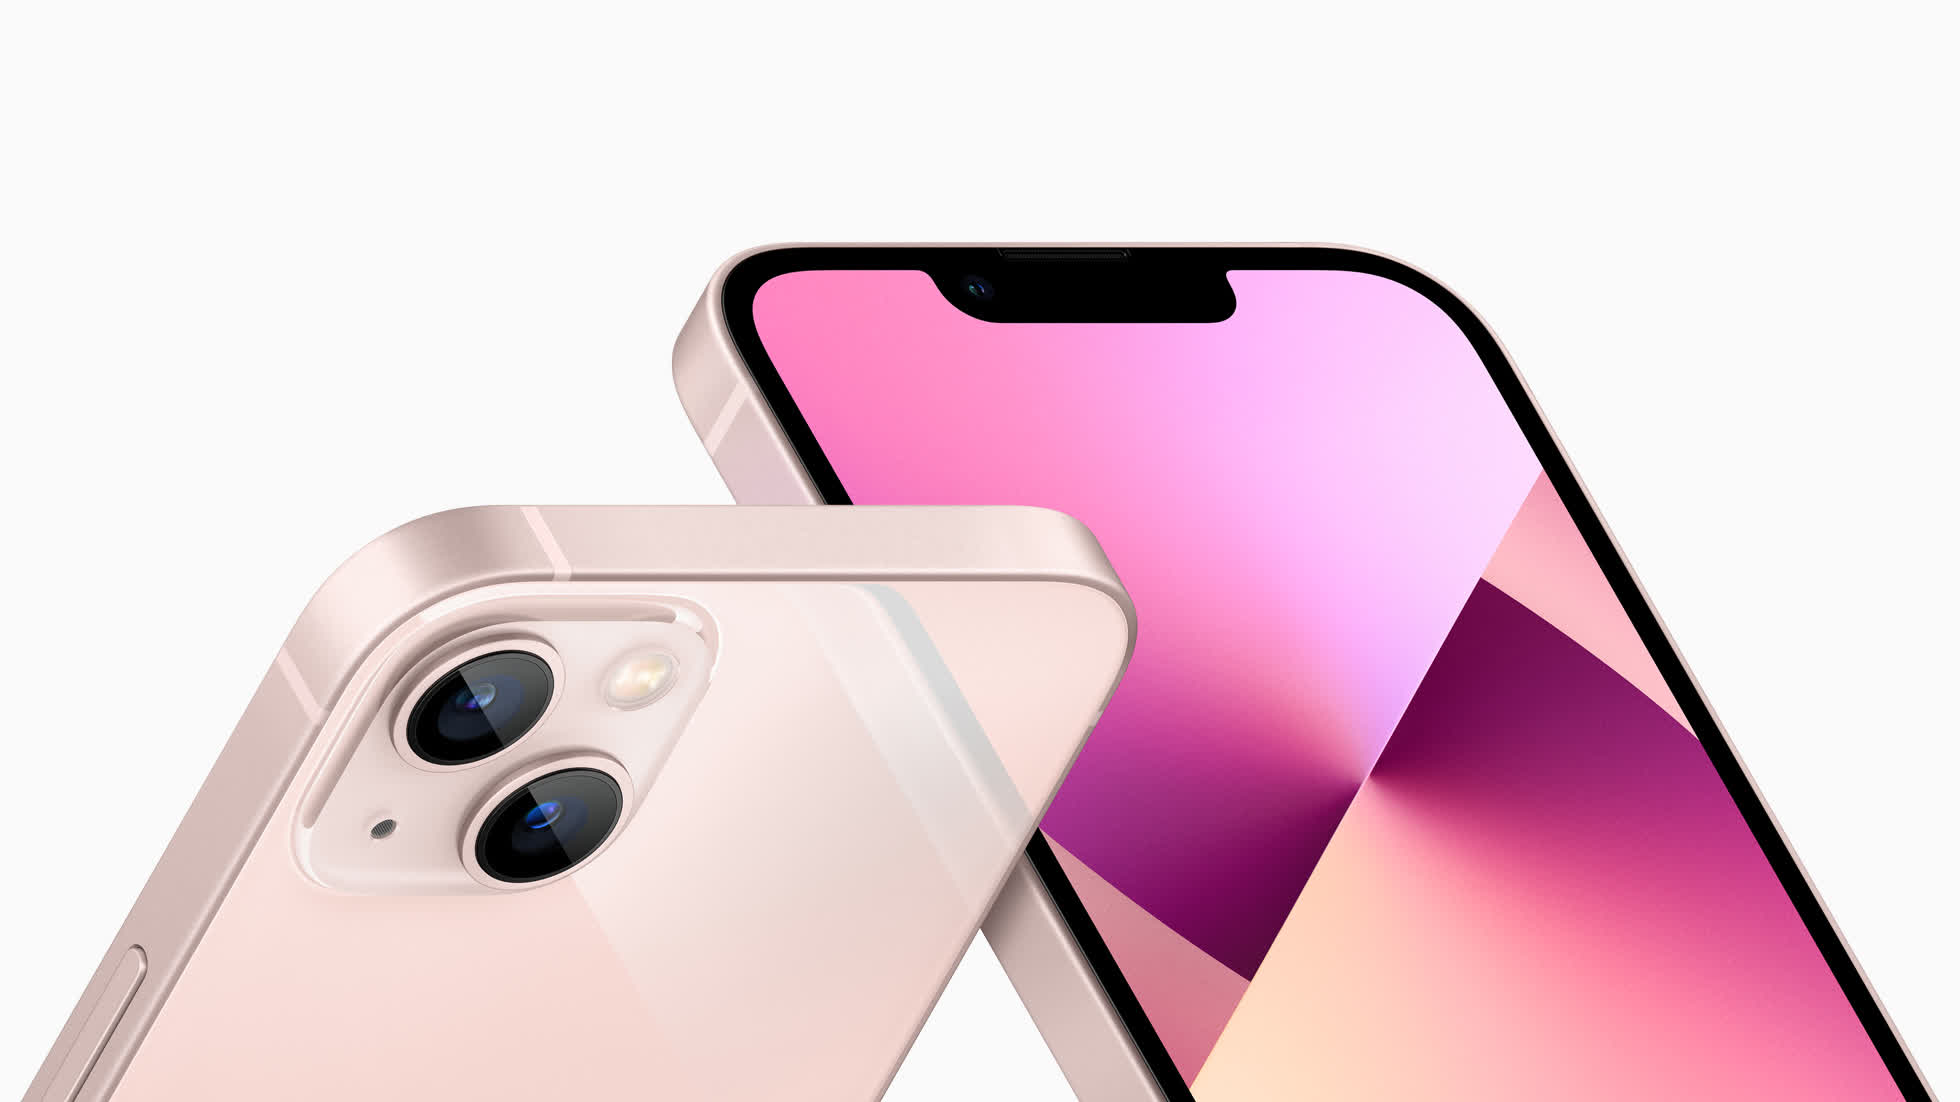 Replacing your iPhone 13 display will render Face ID unusable, unless Apple does it